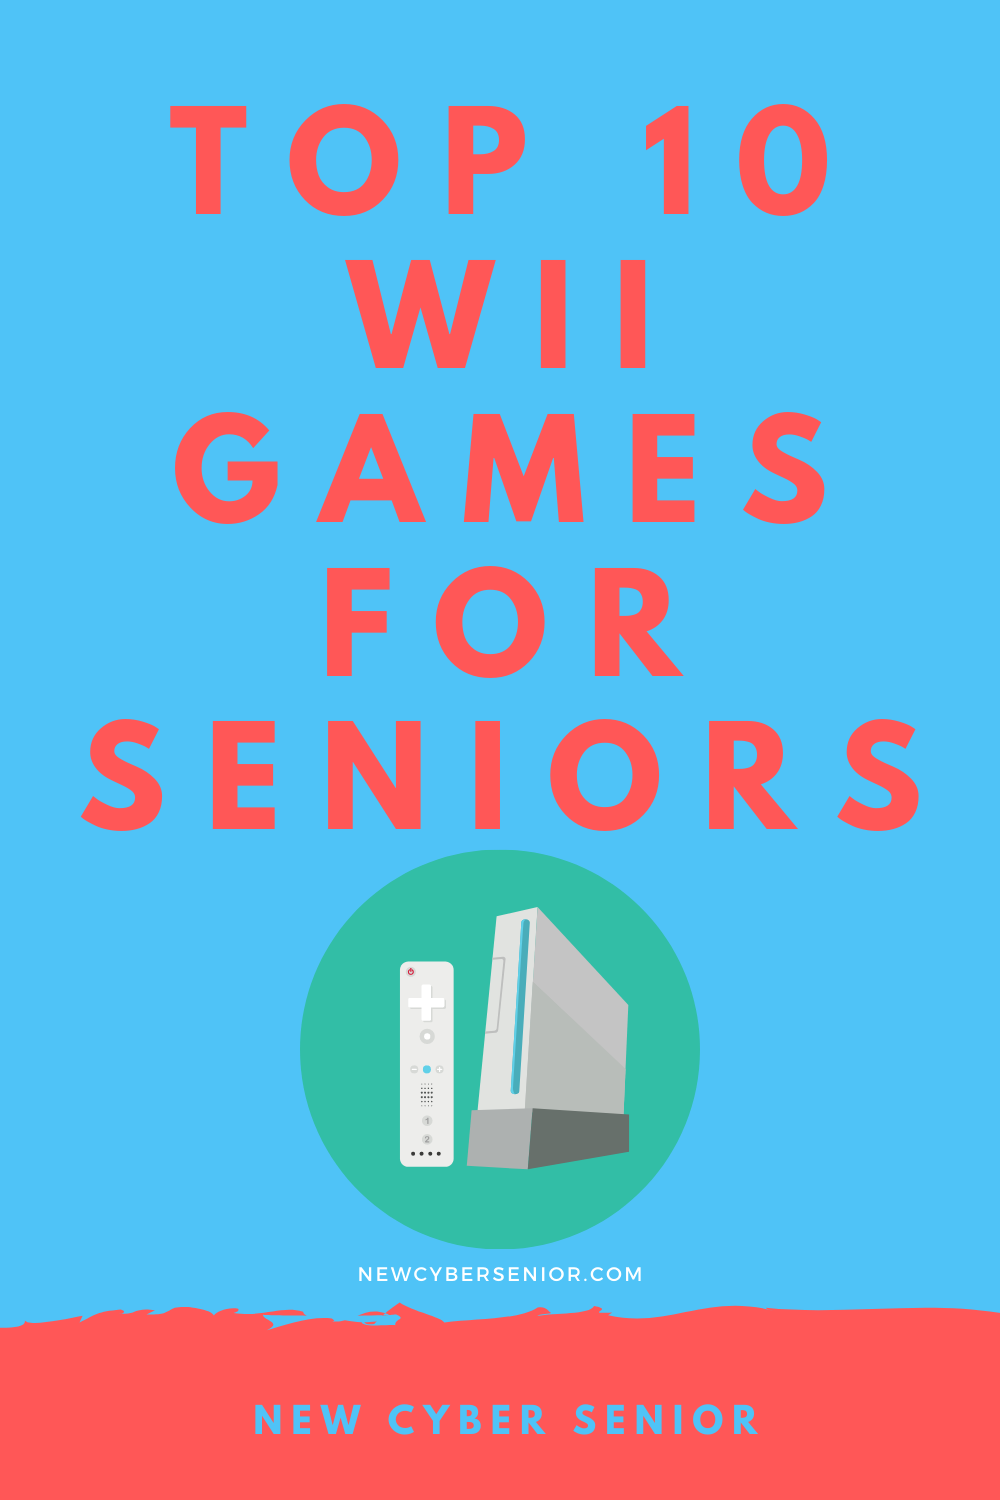 Top-10-Wii-Games-for-Seniors